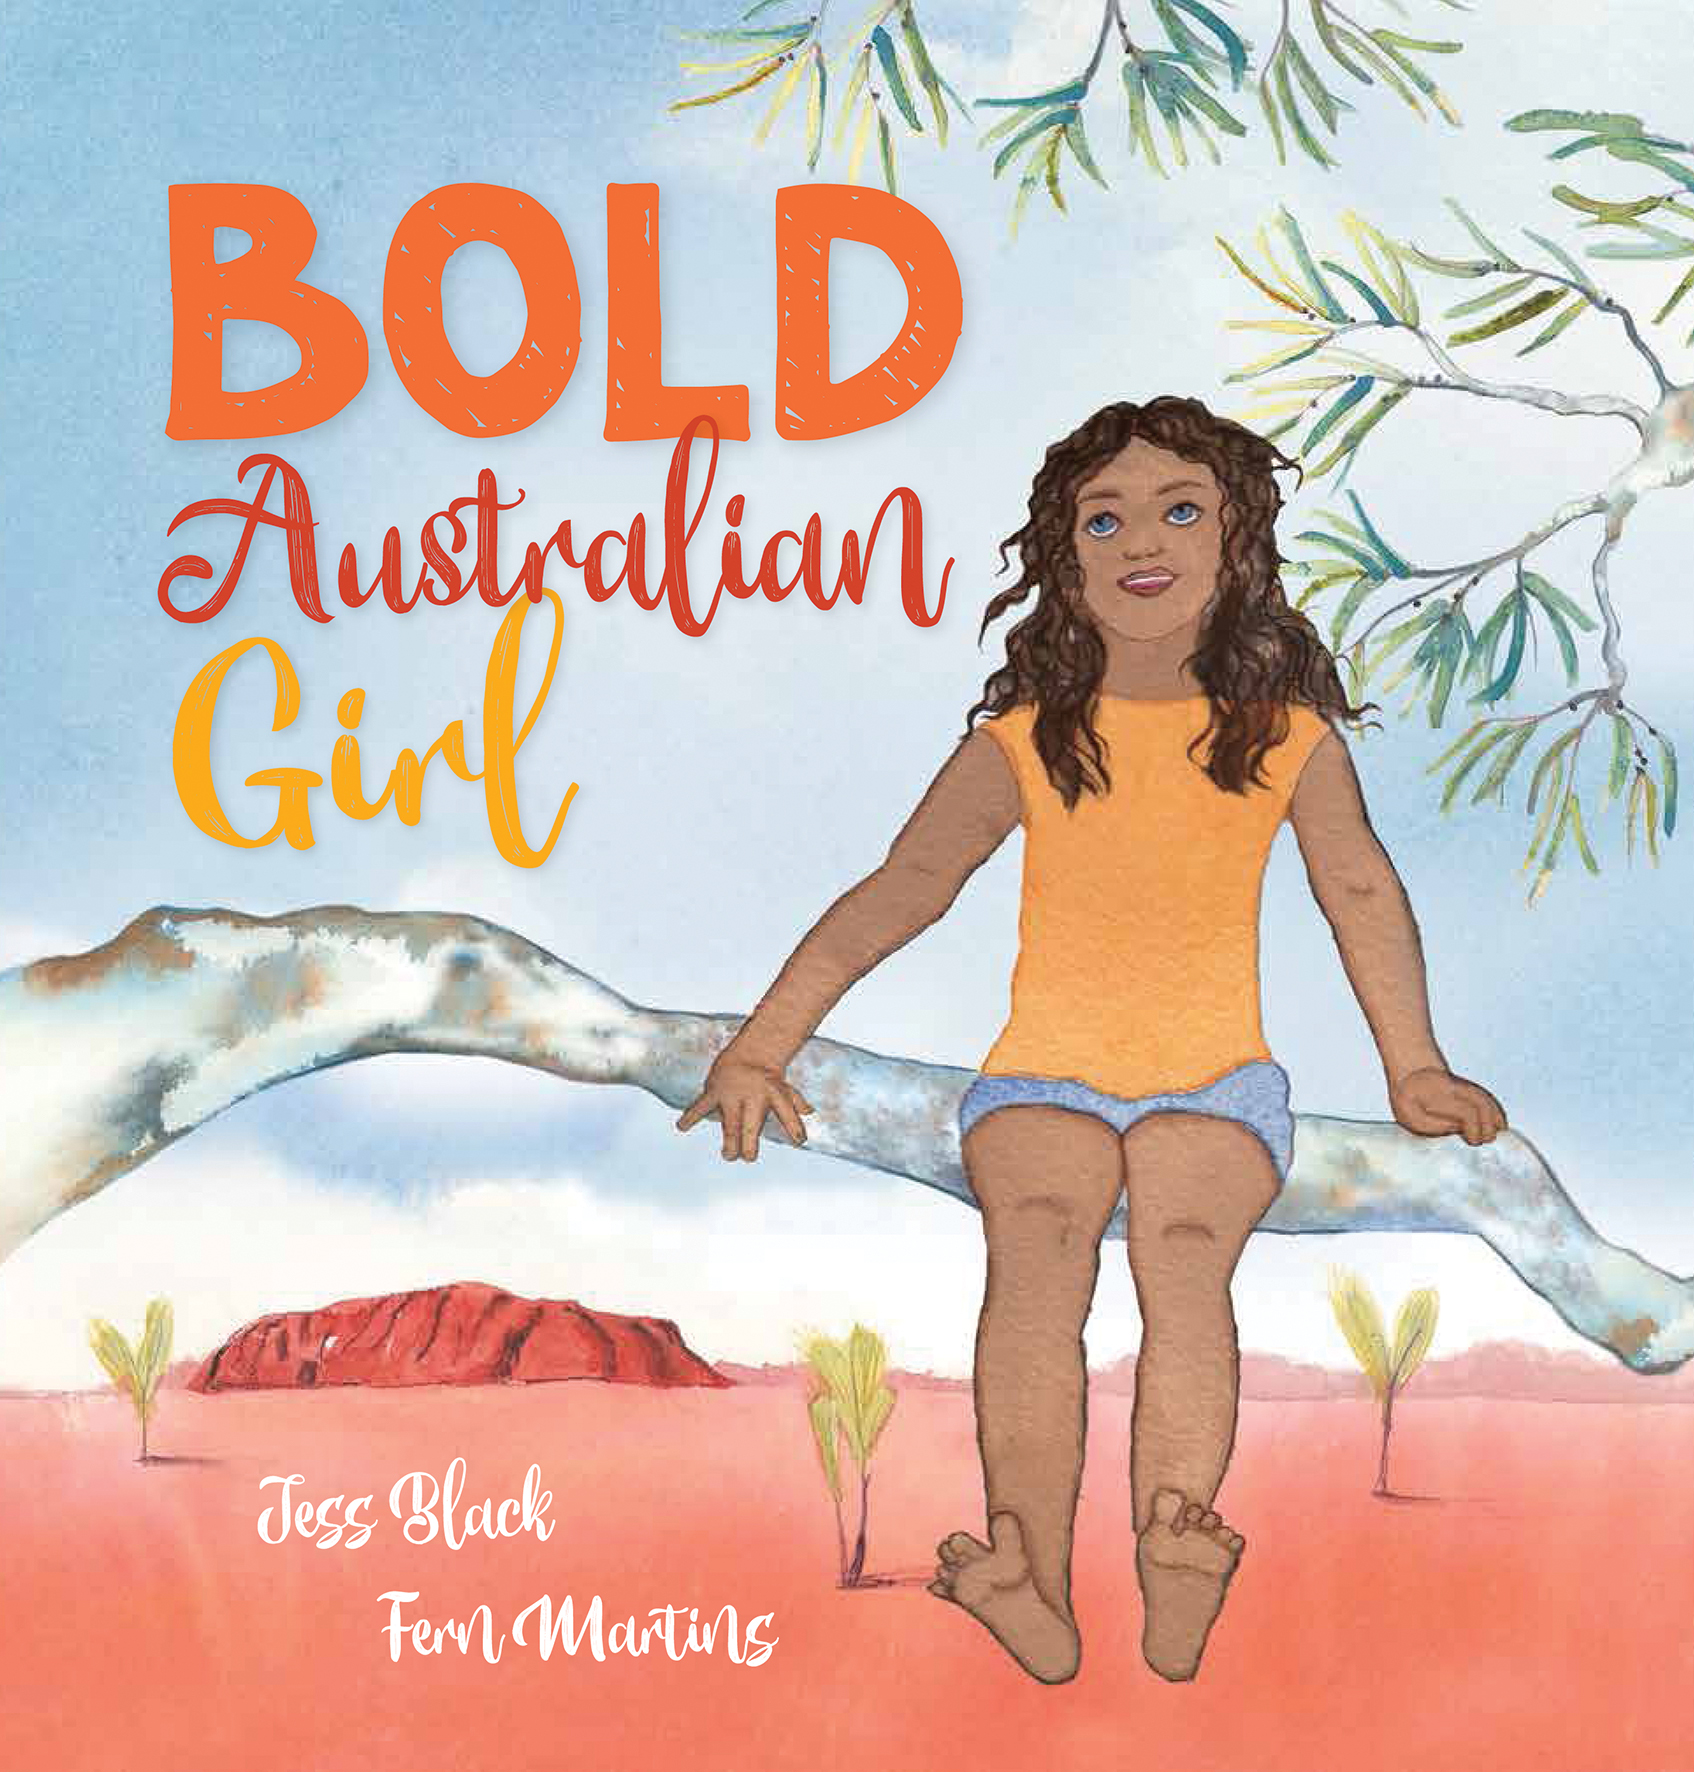 Bold Australian Girl - Do you know what my Mum whispers as she straightens out a curl? 'You can do anything. You're my bold Australian girl.'This delightful picture book encourages girls to do anything. Focusing on a nurturing relationship between a young Indigenous girl and her mum, this book celebrates everything from football to friendship, reading to surfing.